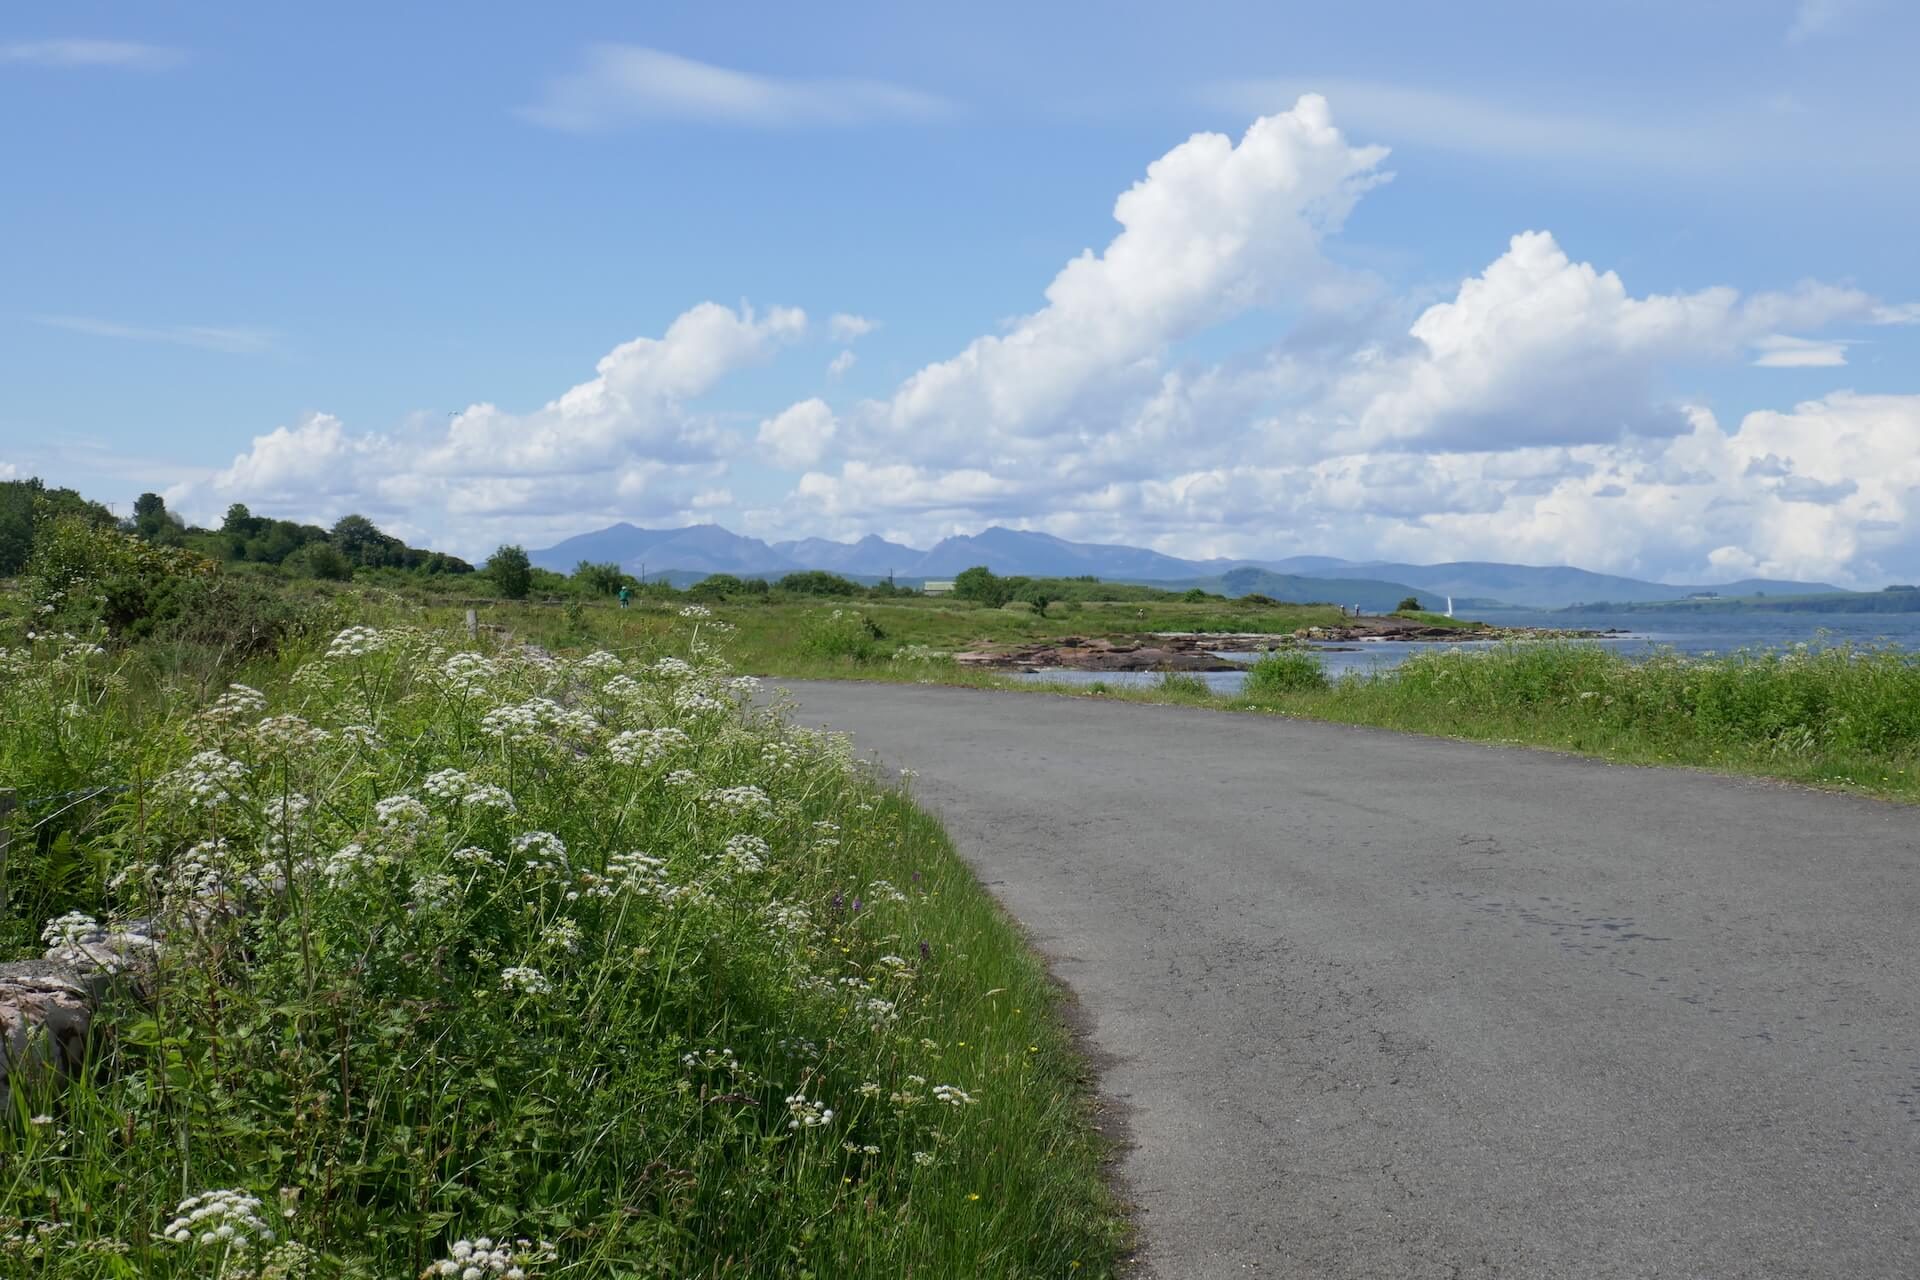 Cumbrae coastal road with view of the mountains of Arran in the distance